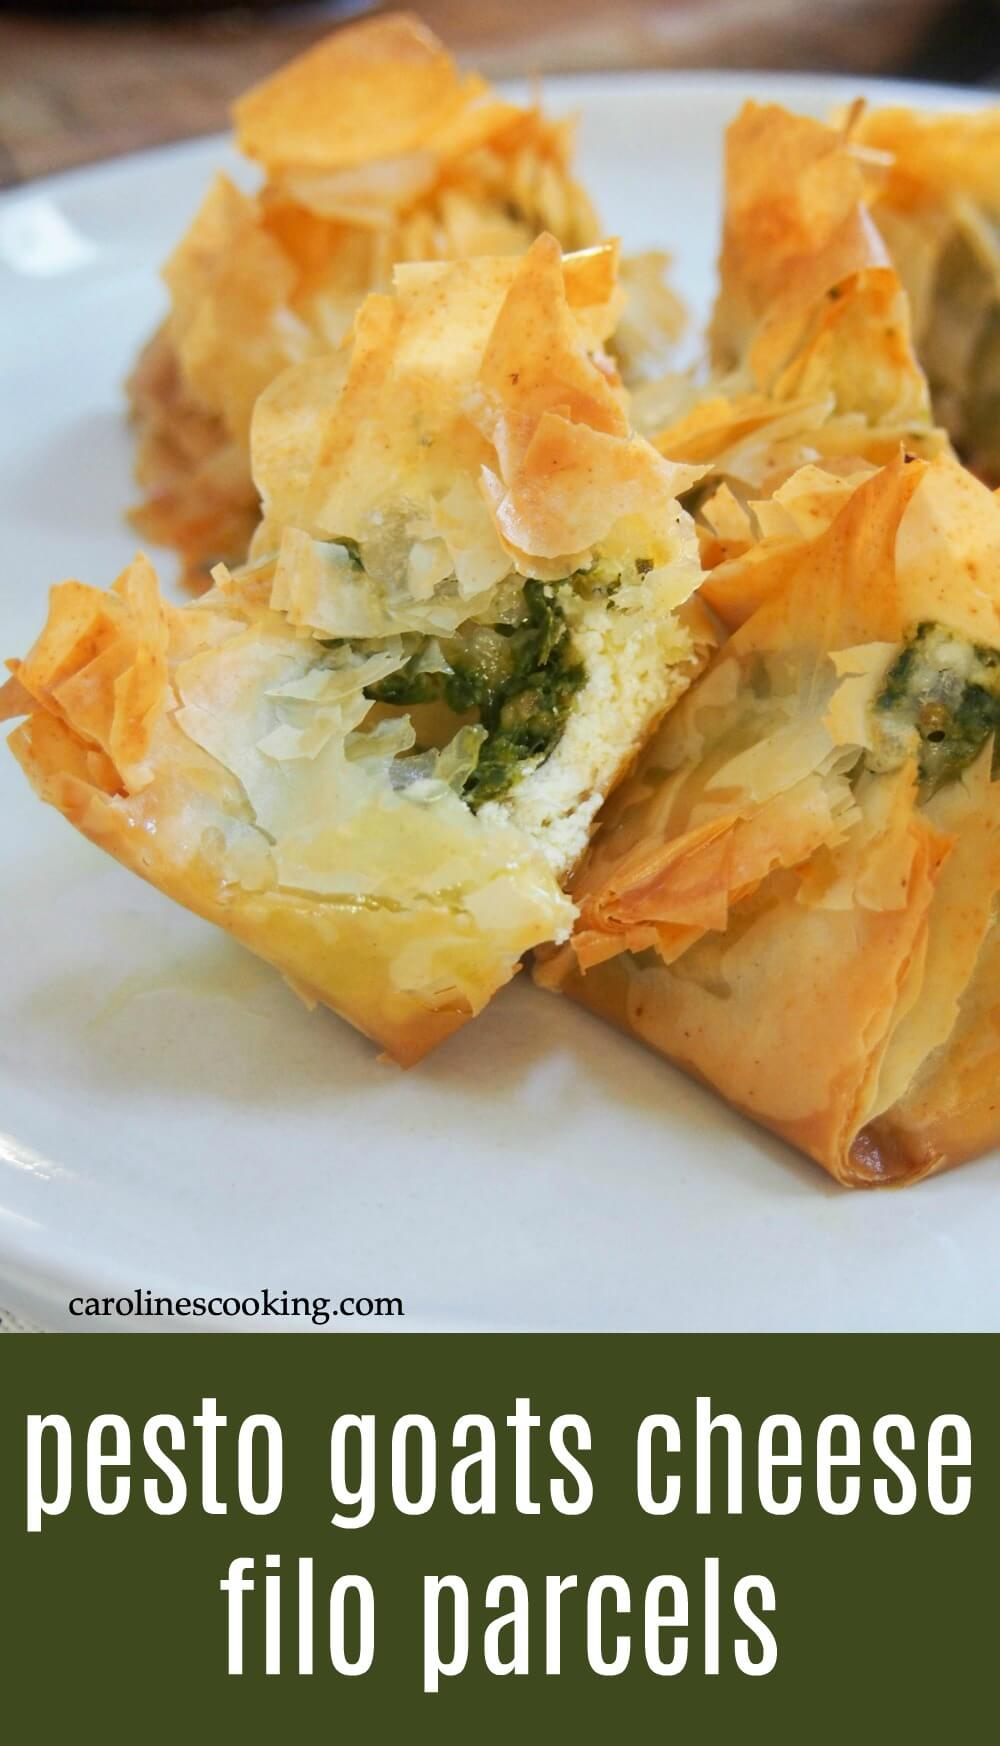 These pesto goats cheese filo parcels are a delicious little bite of goodness. Crisp, flaky pastry, smooth creamy goats cheese and the fabulous flavors of pesto. They're perfect for entertaining too. #filo #goatcheese #appetizer